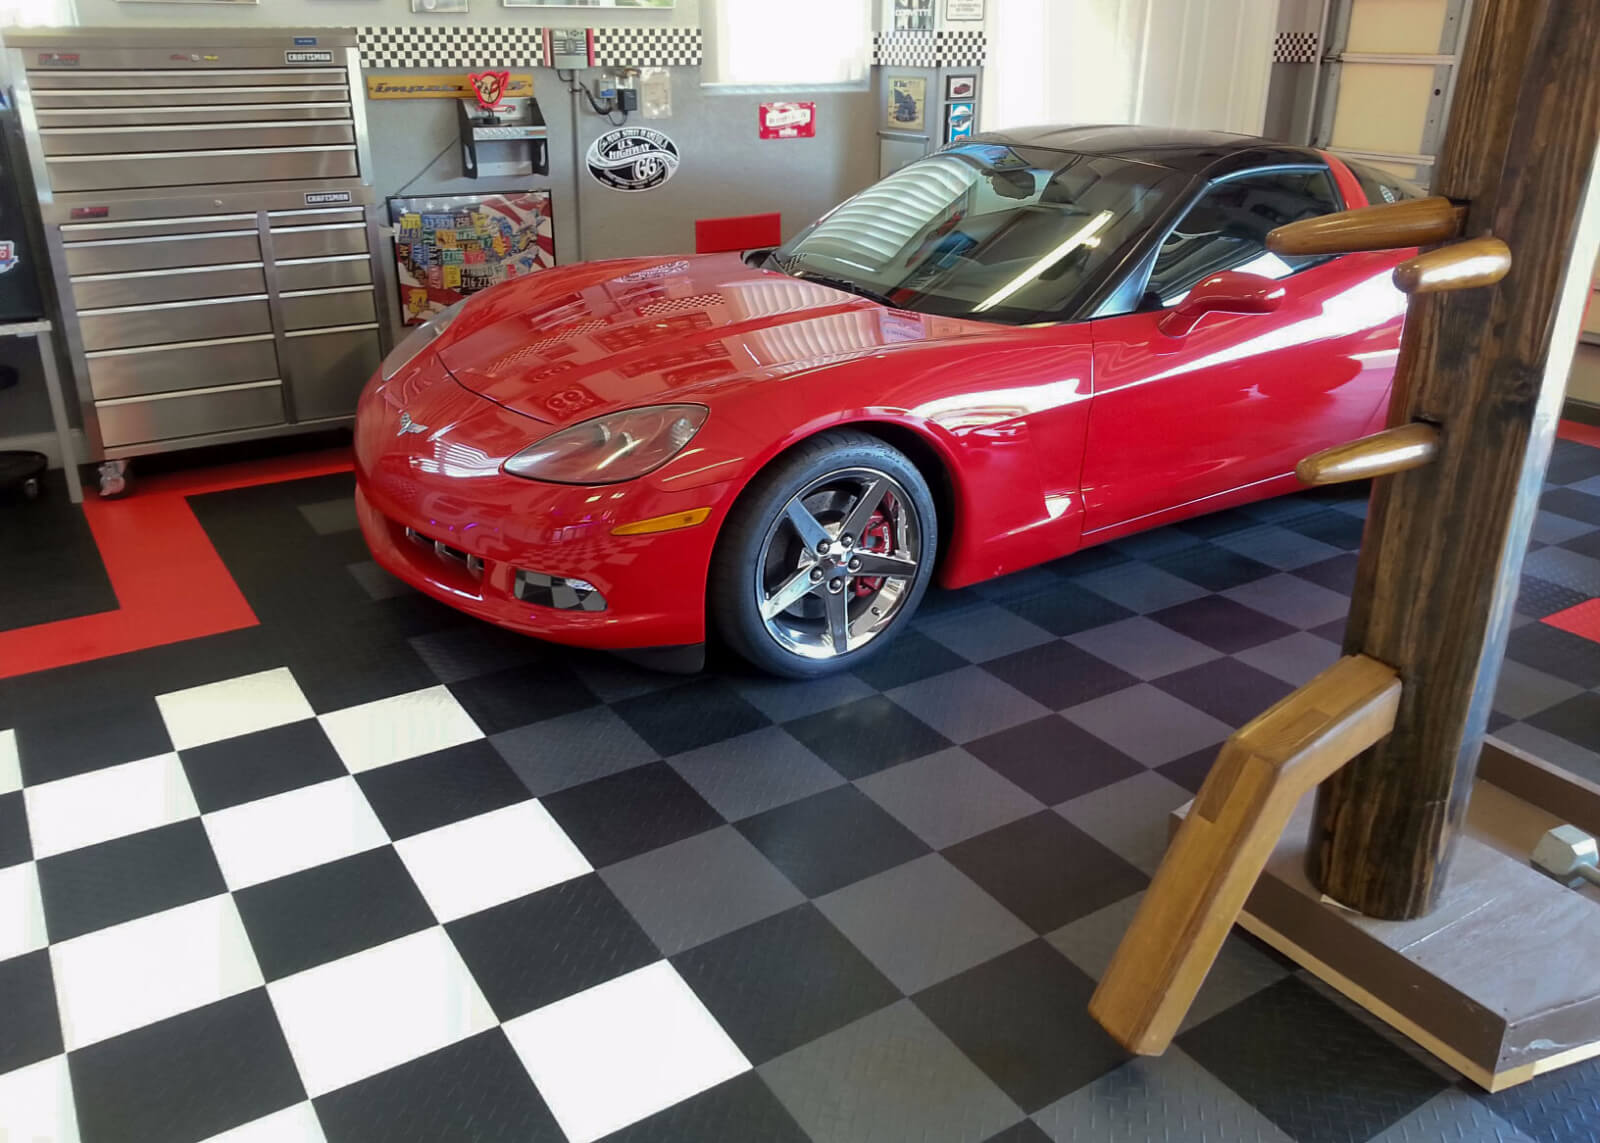 Little Red Corvette on custom garage floor